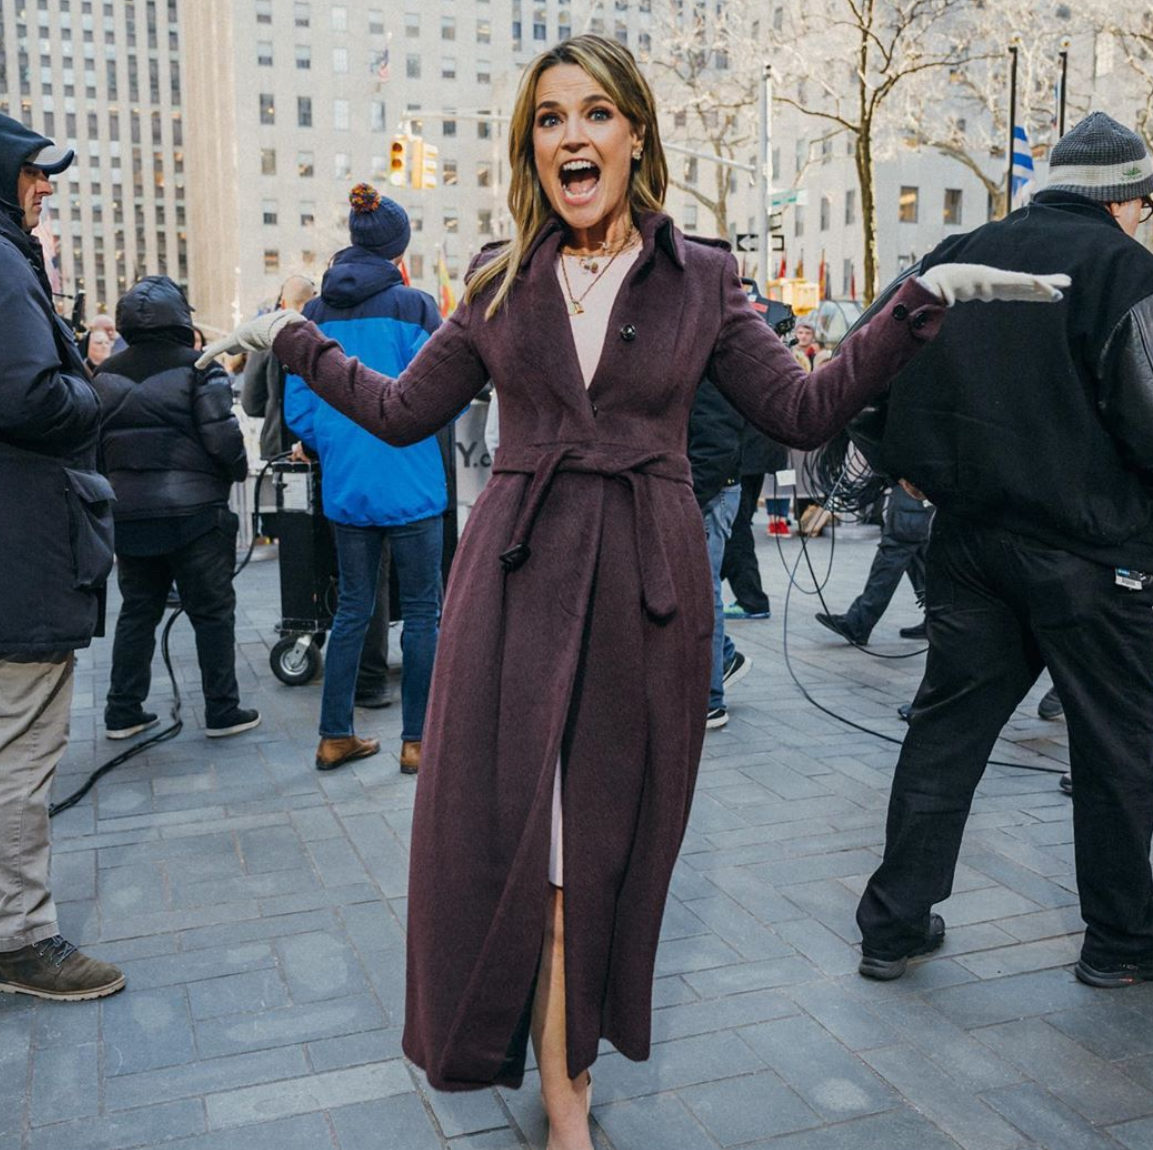 Savannah Guthrie S Salary Is Quite Impressive Thanks To Today